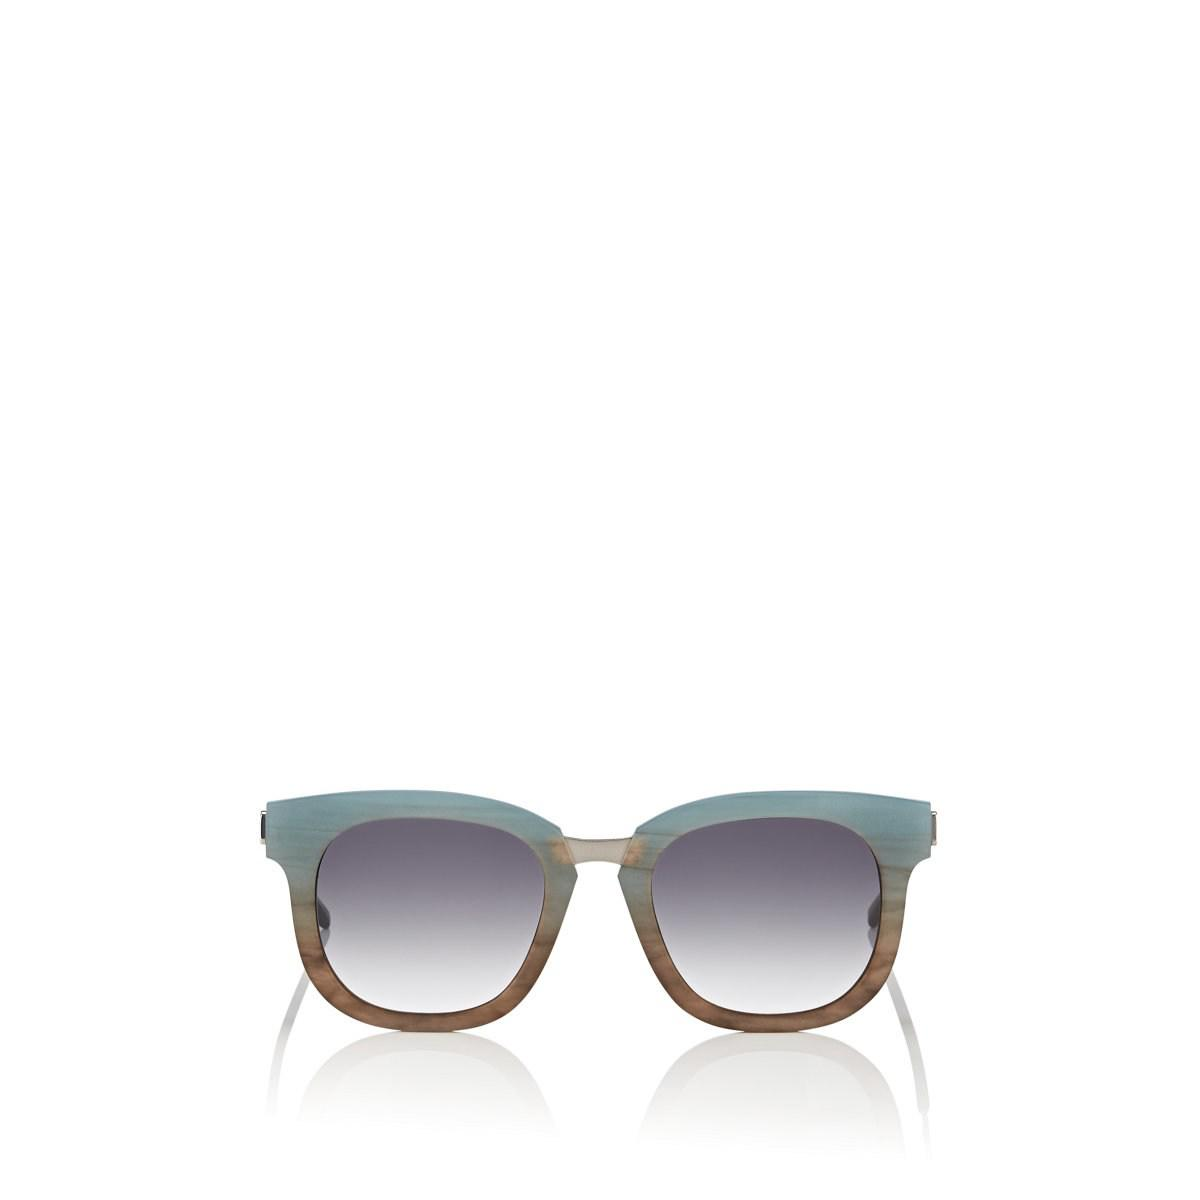 17bec94275 Lyst - Thierry Lasry Arbitrary Sunglasses in Natural